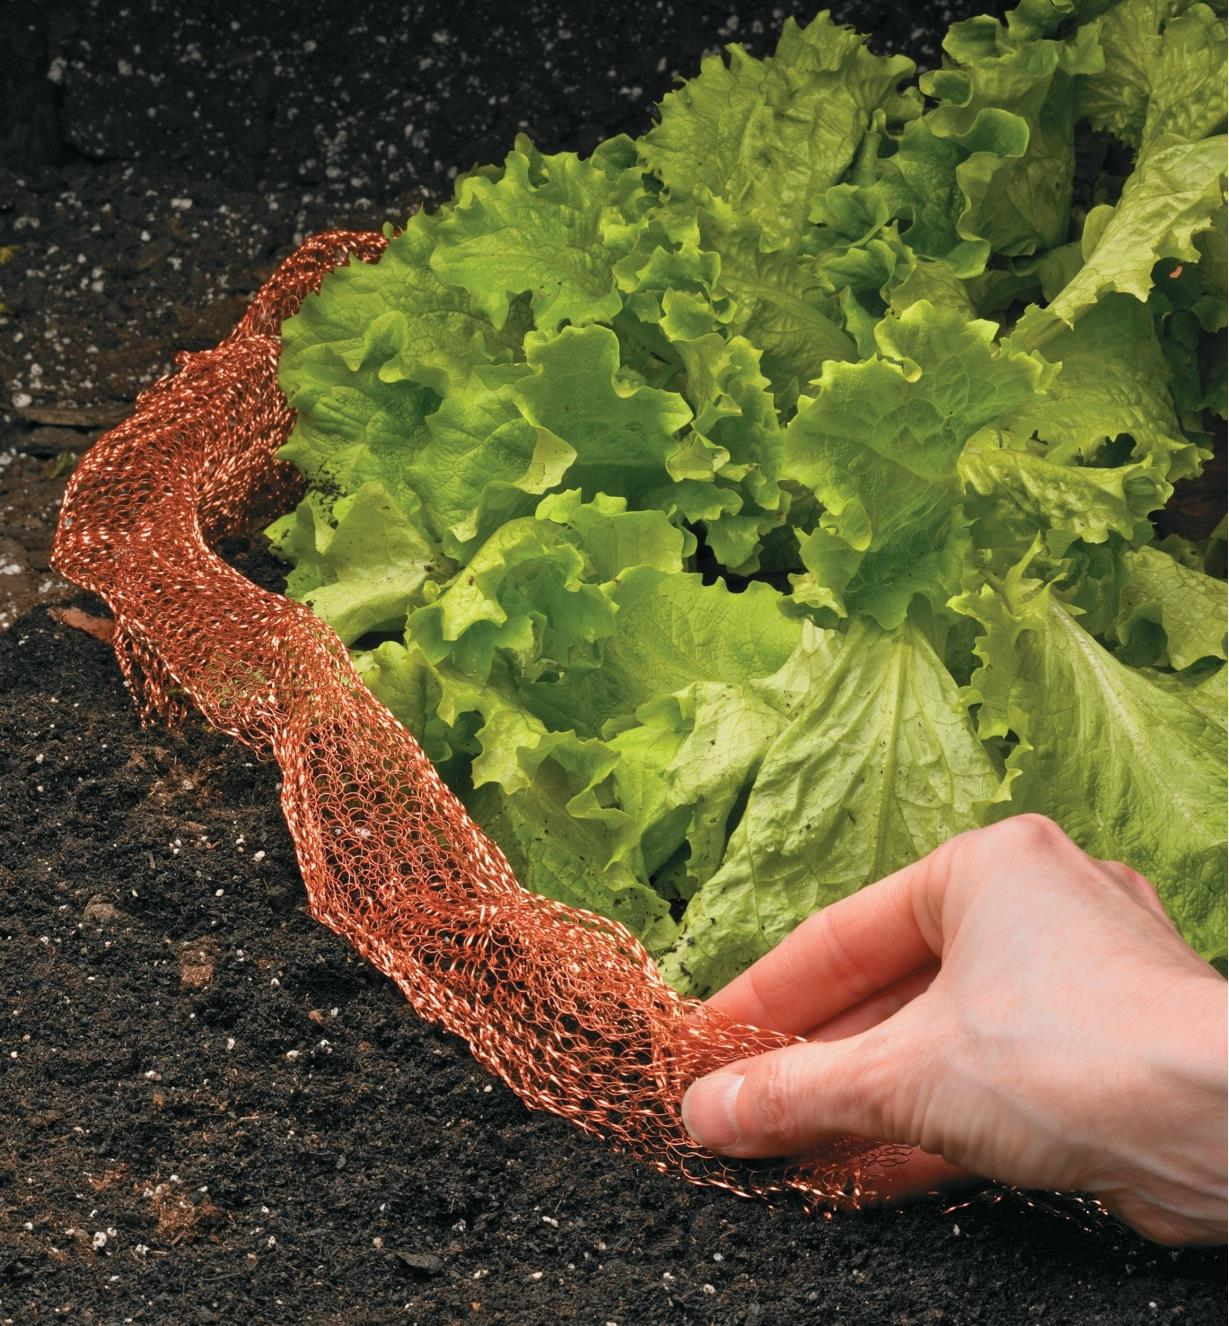 Copper Blocker placed around lettuce in a garden